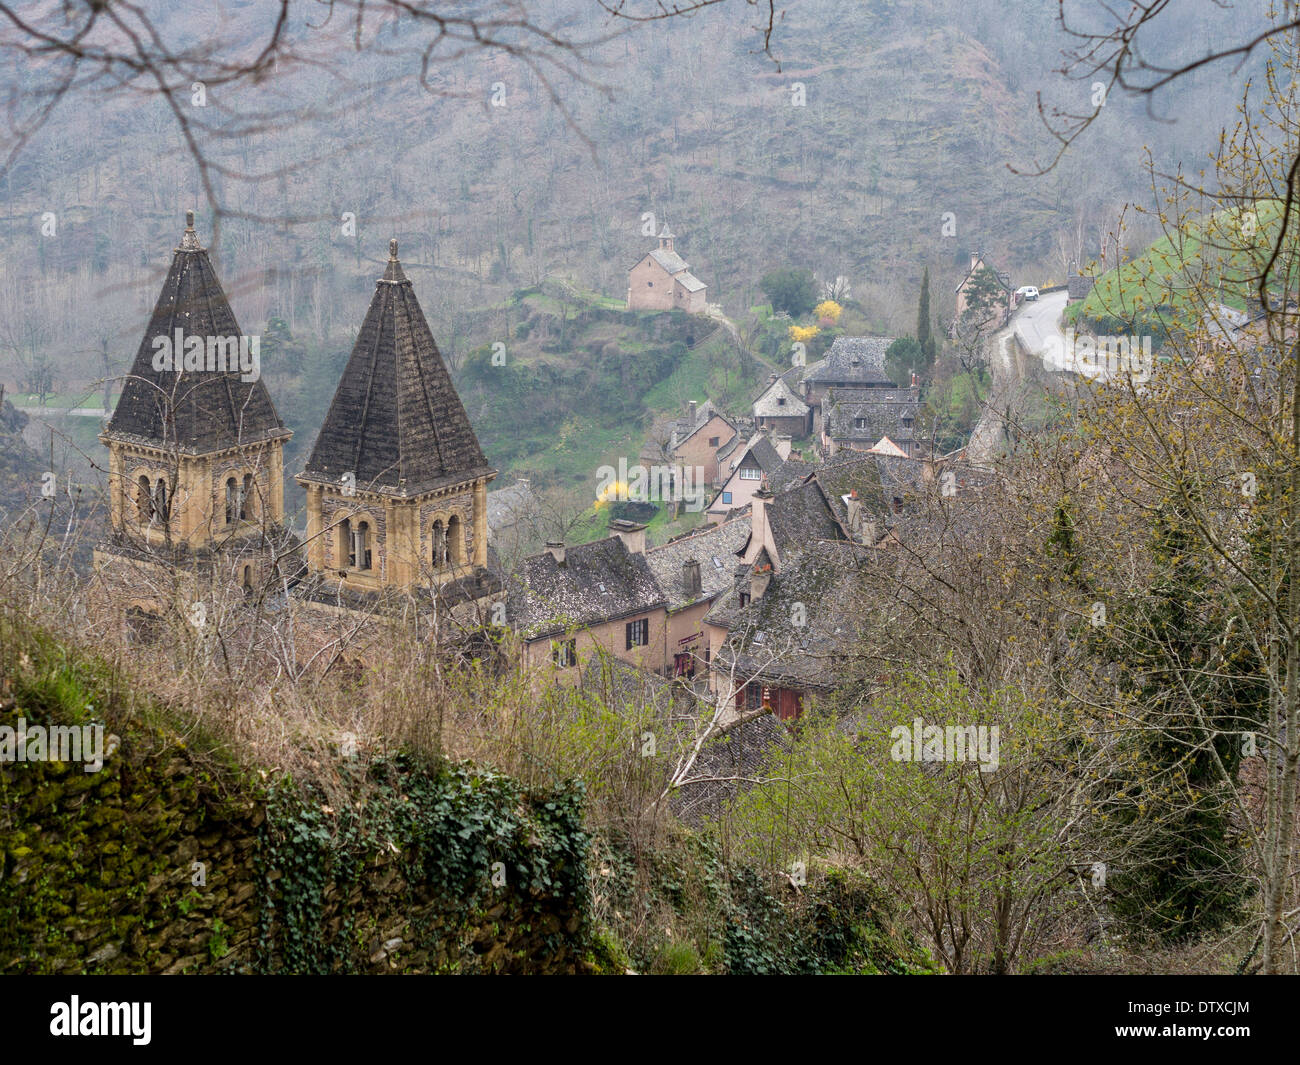 Abbey Church of Saint Foy. Set in the small mountain village of Conques the abbey church is the focal point for the small town. - Stock Image